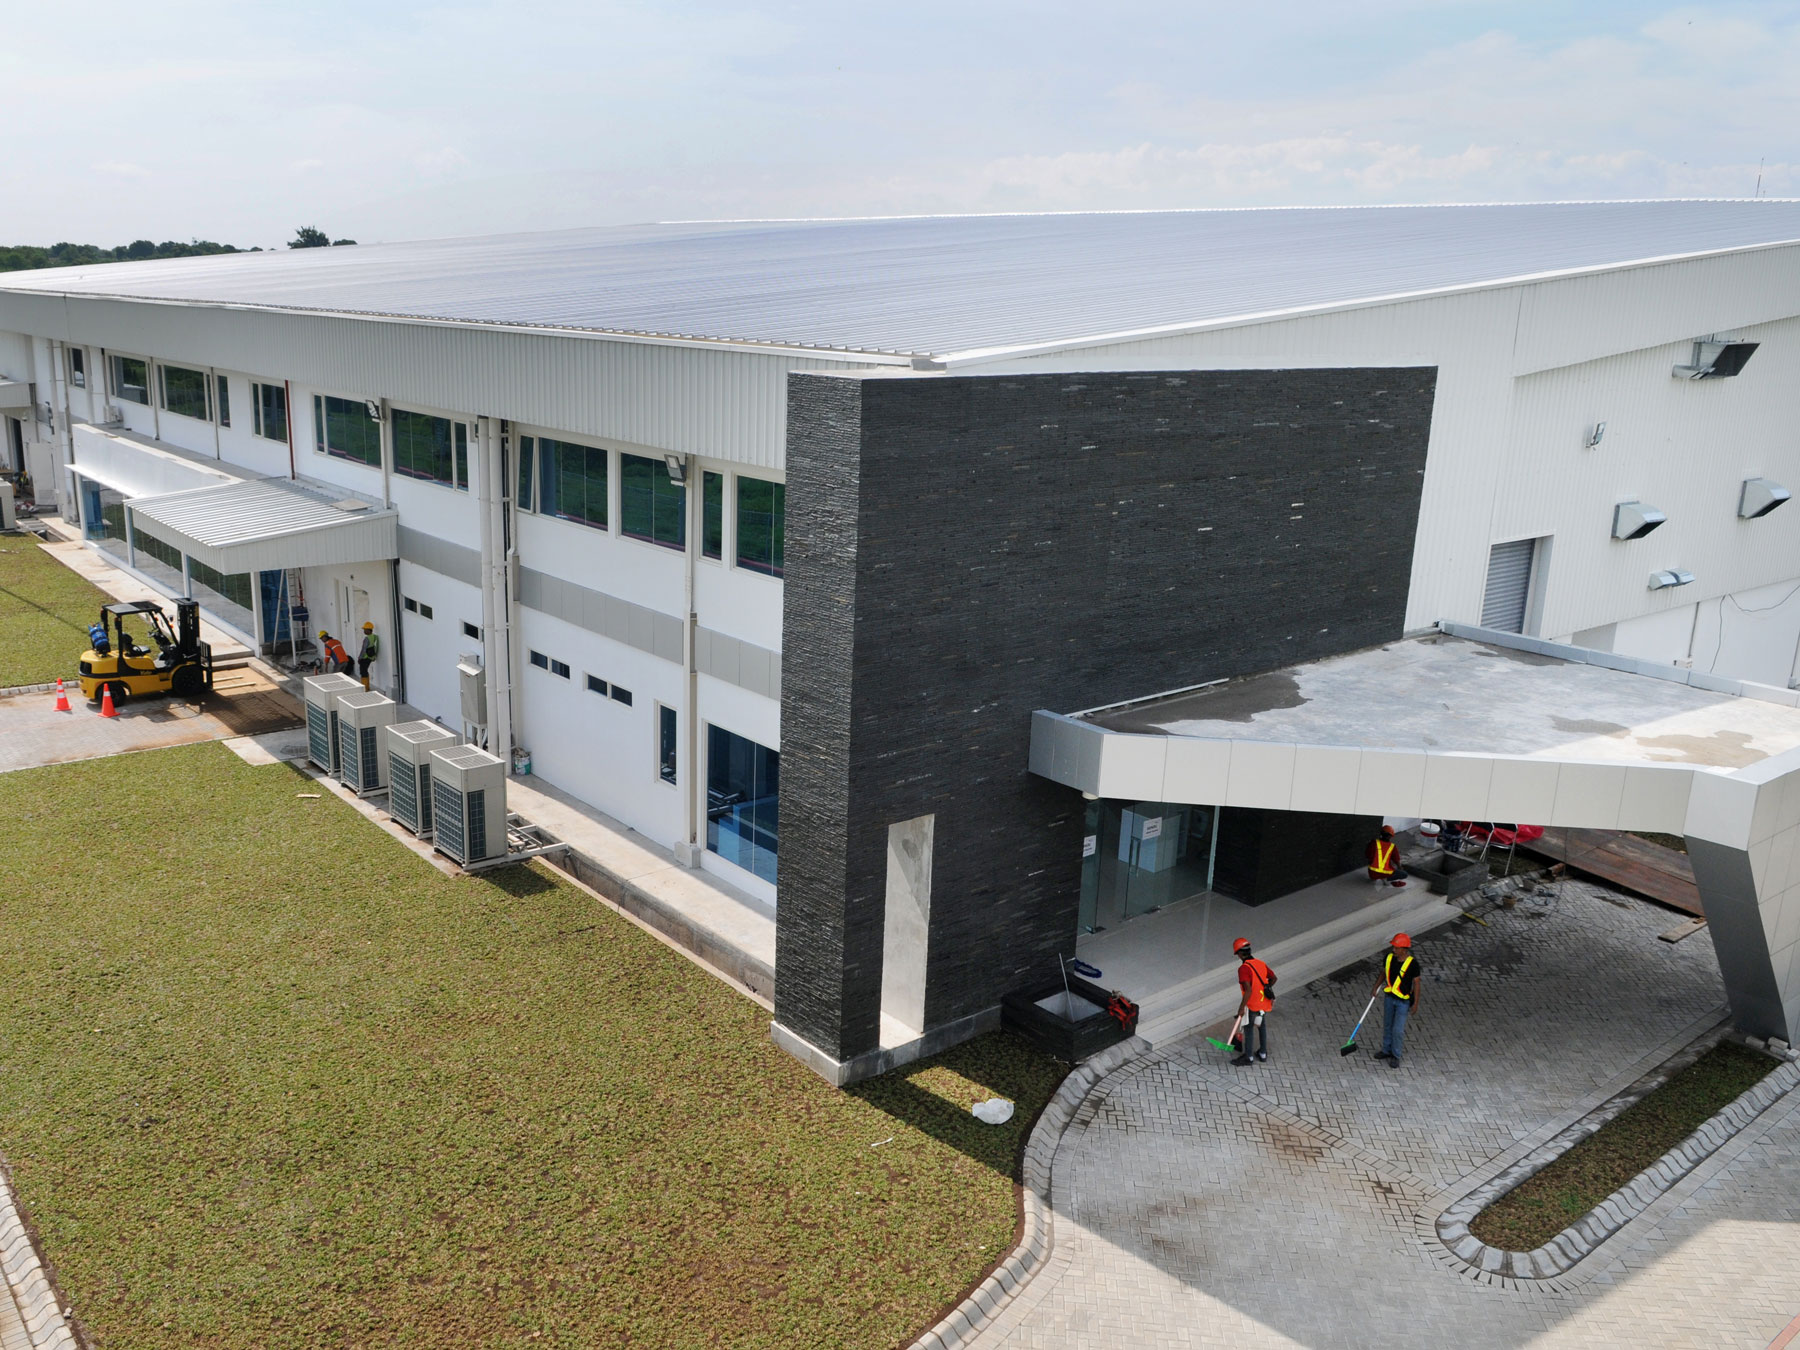 Pasuruan Indonesia  city images : Amcor packaging plant – Pasuruan, Indonesia | BAM International